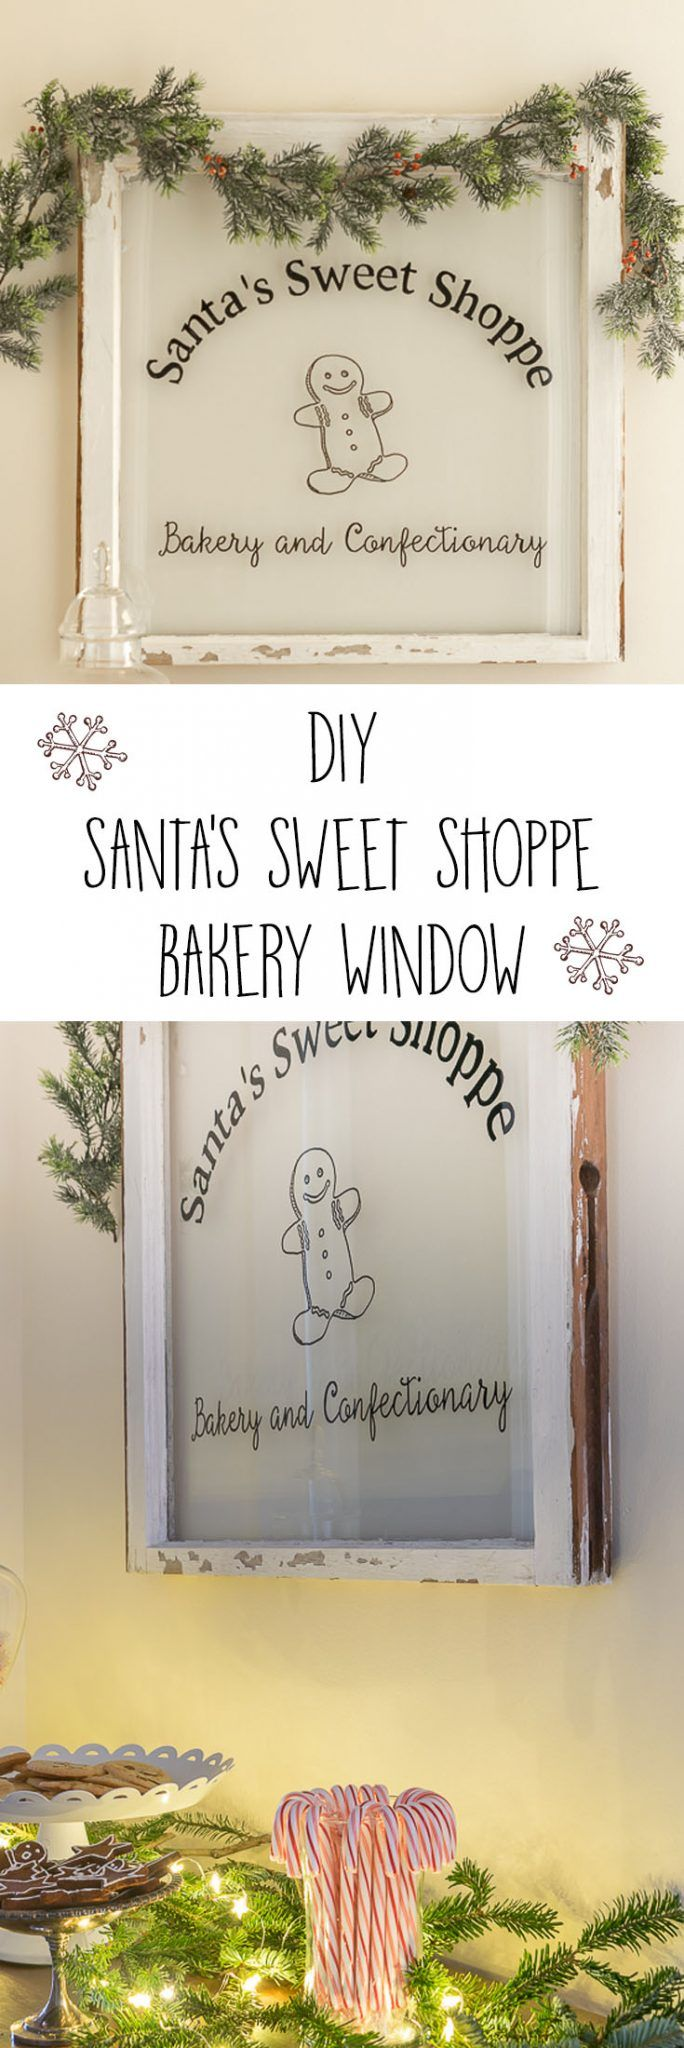 What a fun DIY! This easy to make Santa's Sweet Shoppe Bakery Window is a perfect upcycled craft for Christmas and Holiday decor.